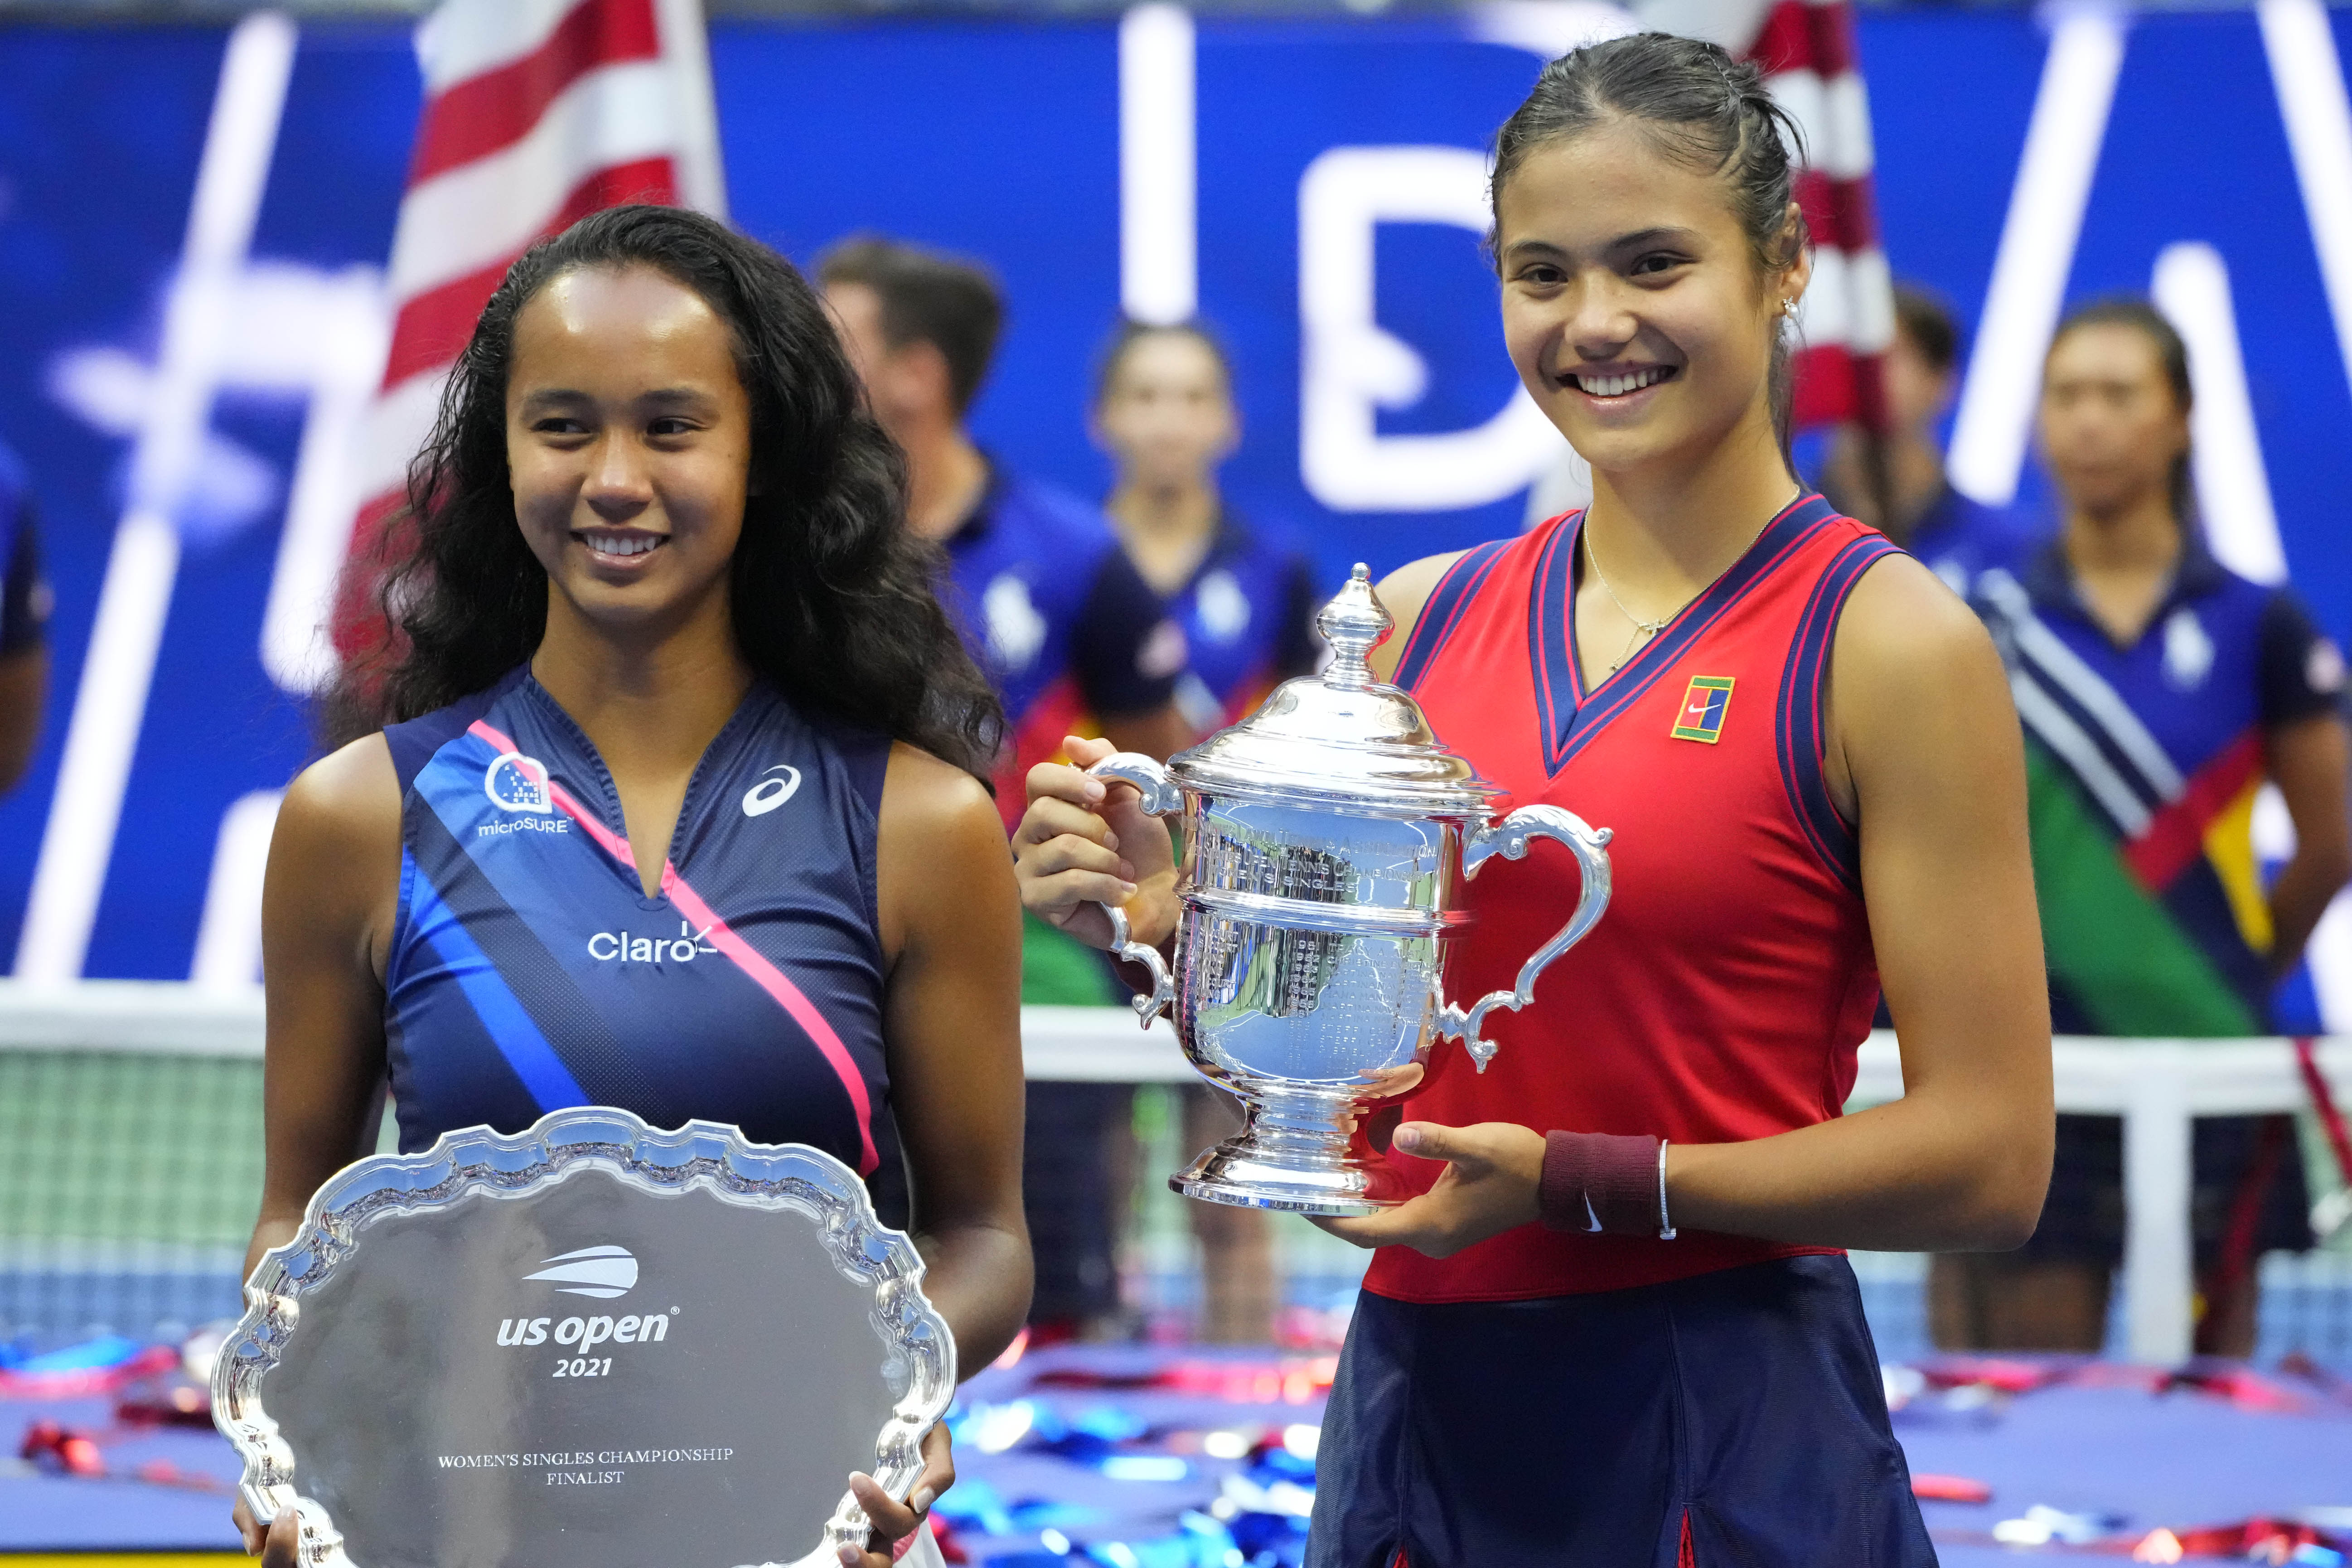 Sep 11, 2021; Flushing, NY, USA; (L-R) Leylah Fernandez of Canada and Emma Raducanu of Great Britain celebrate with the finalist and championship trophy (respectively) after their match in the women's singles final on day thirteen of the 2021 U.S. Open tennis tournament at USTA Billie Jean King National Tennis Center. Mandatory Credit: Robert Deutsch-USA TODAY Sports/File photo